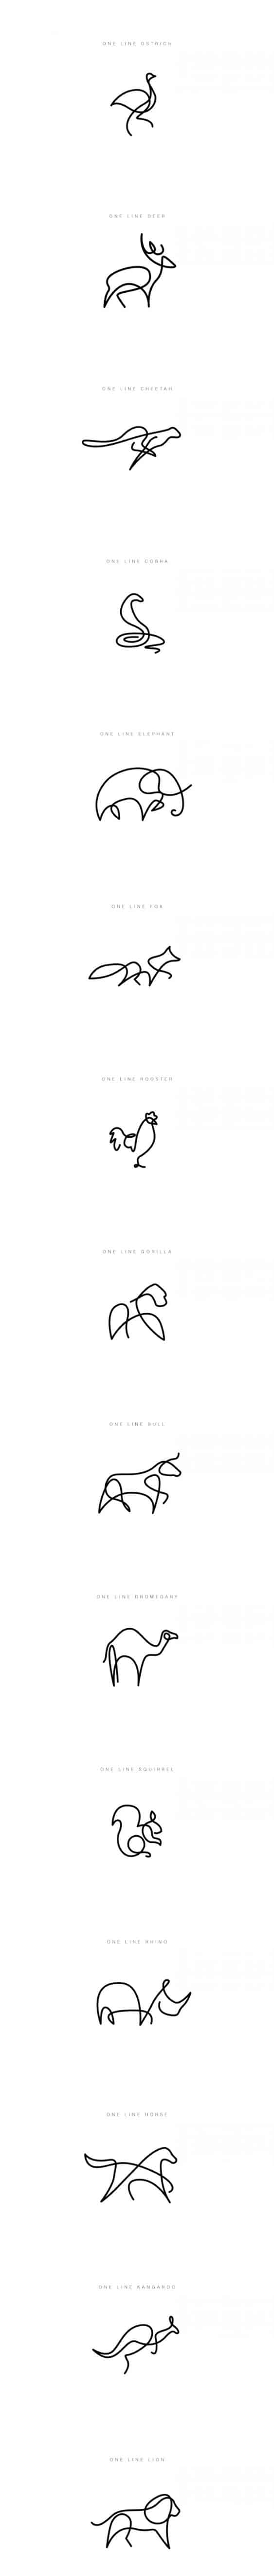 ANIMALS PORTRAITS SIMPLIFIED TO ONE LINE